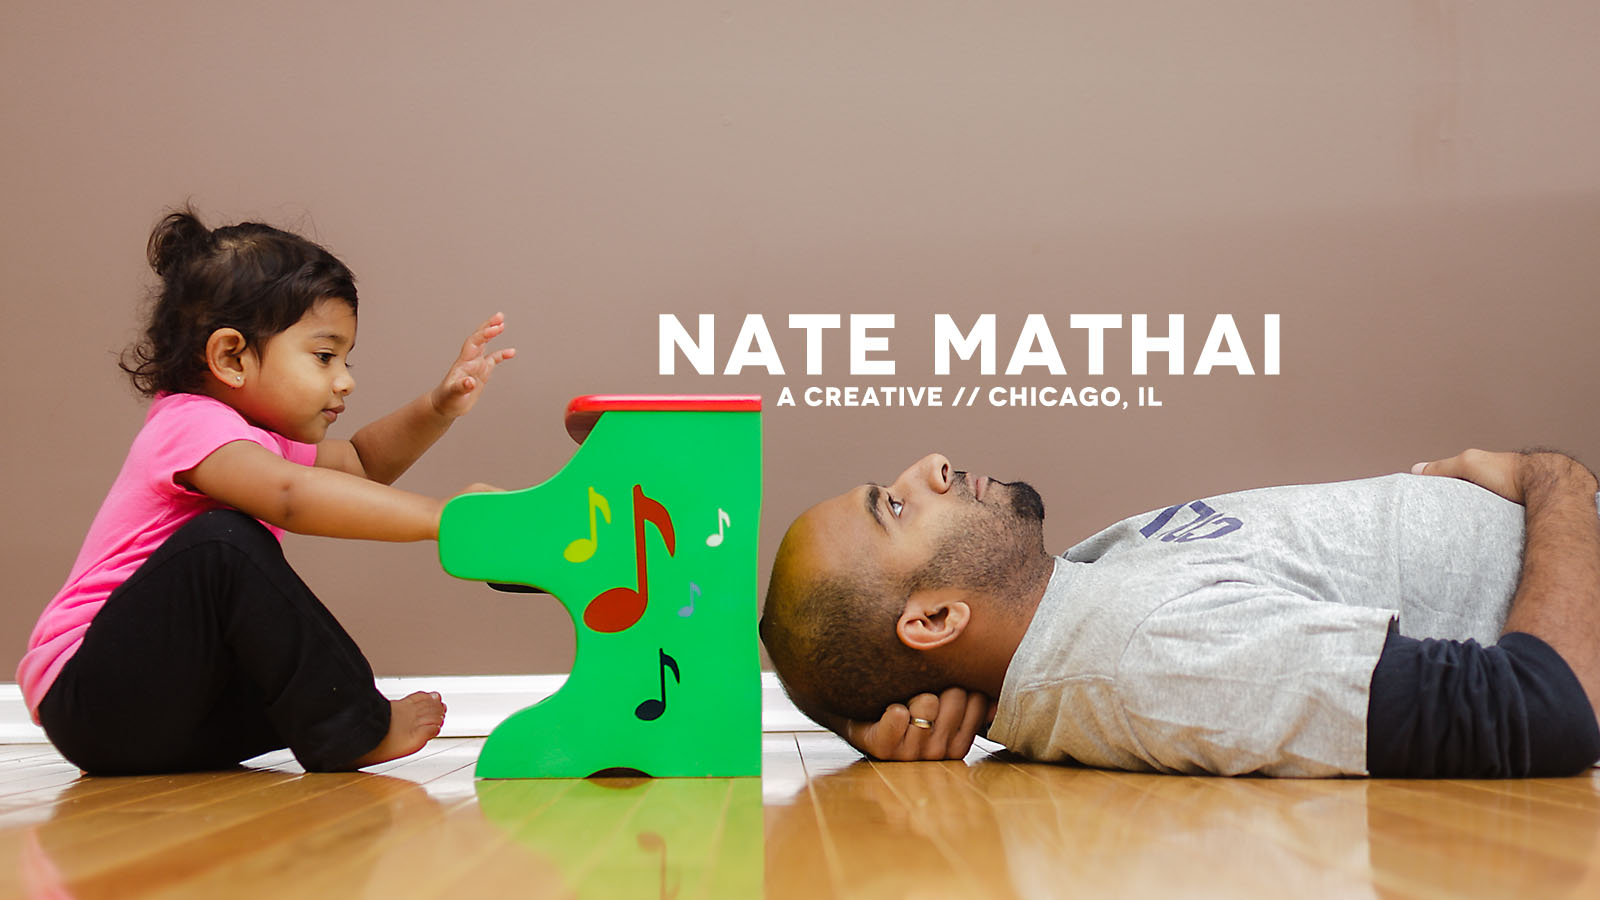 top image for Prayer by chicago wedding photographer nate mathai